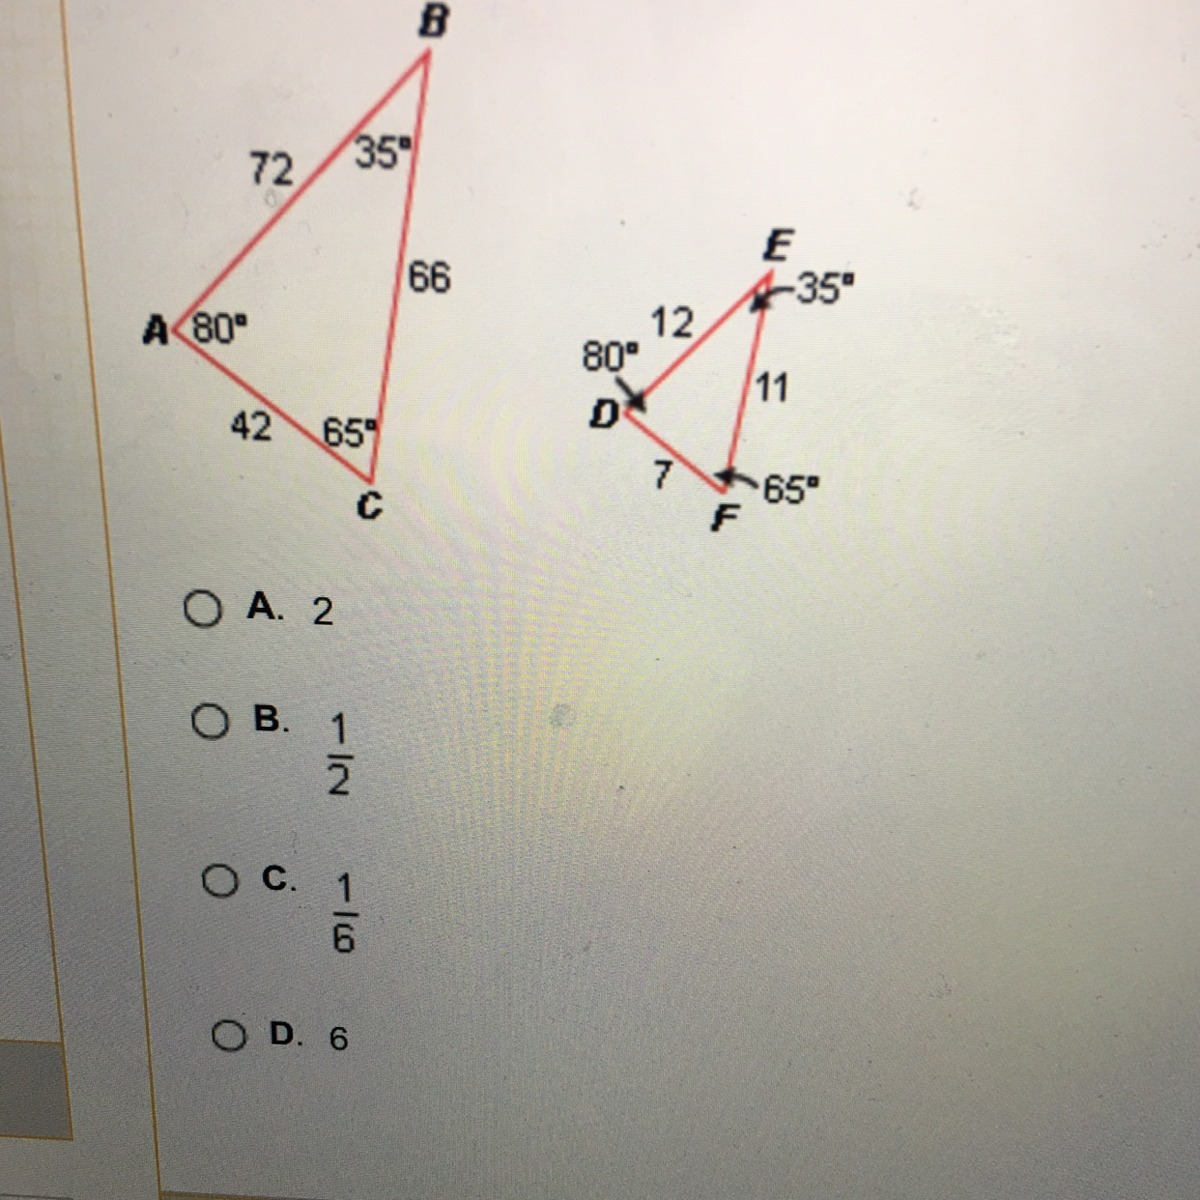 What Is The Scale Factor Of Triangle Abc To Triangle Def